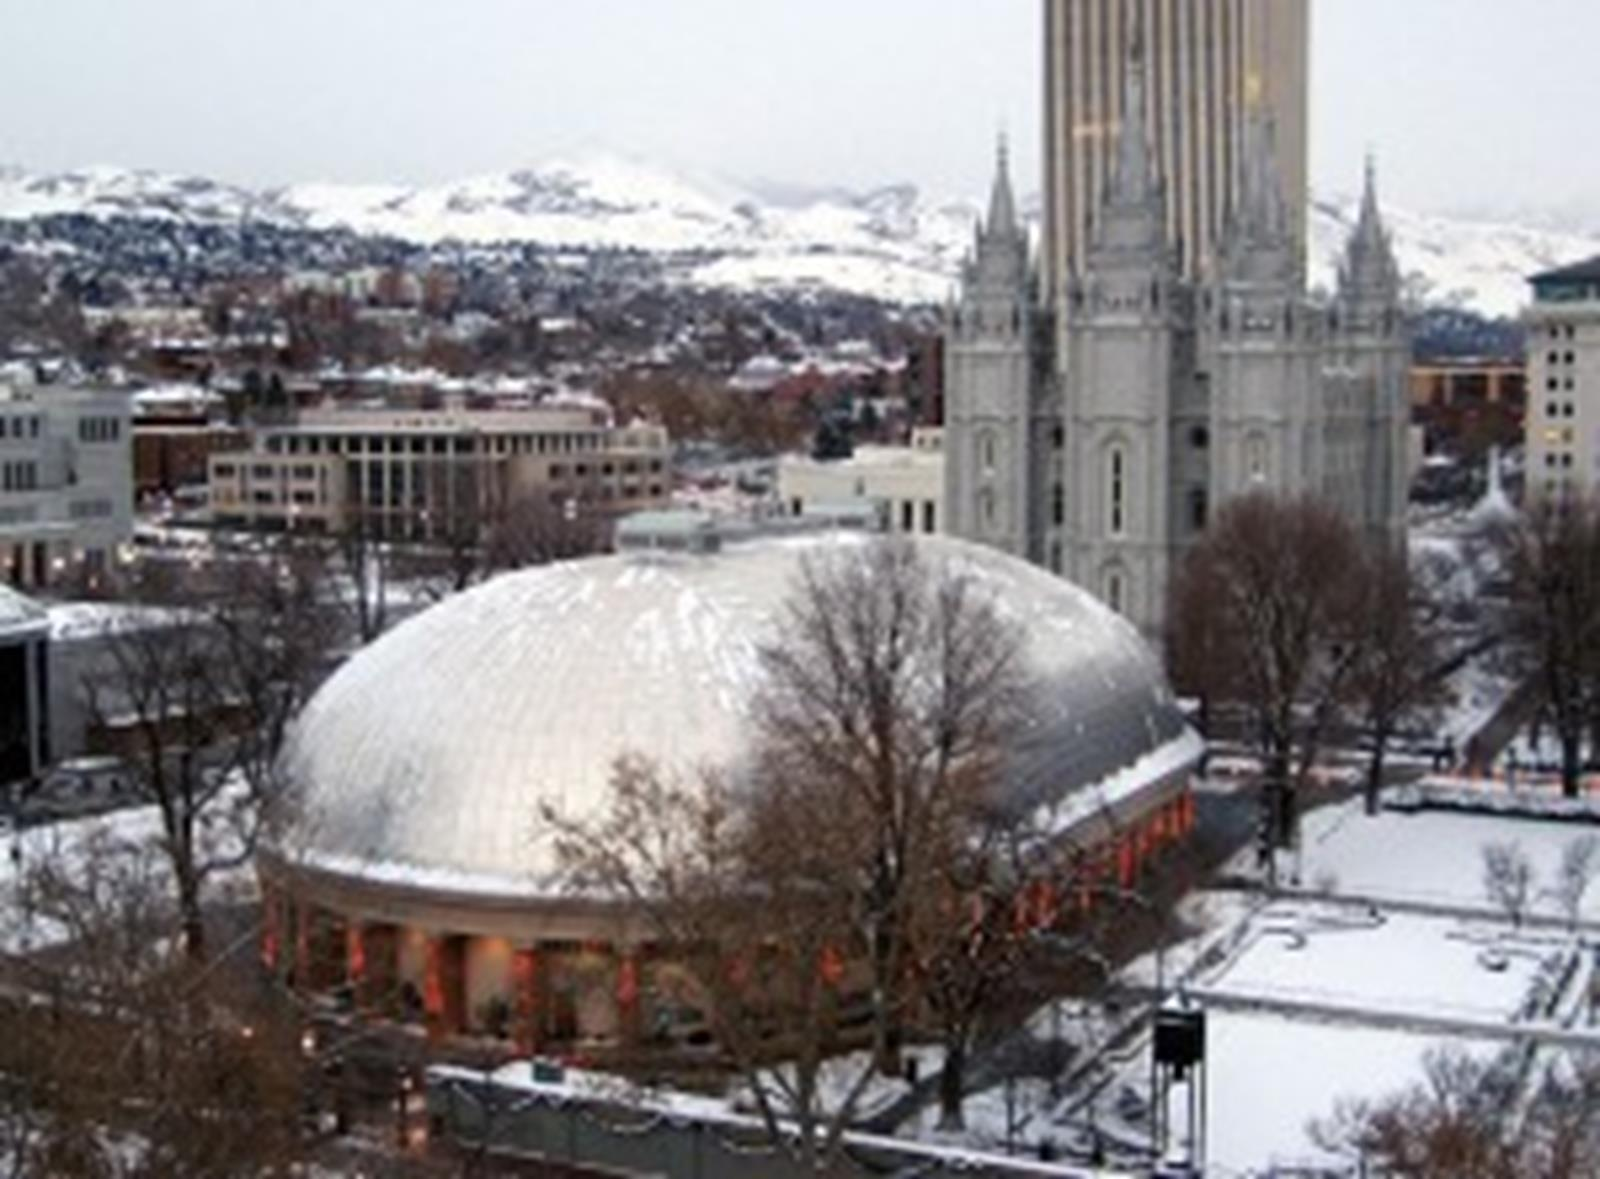 The Tabernacle on Temple Square